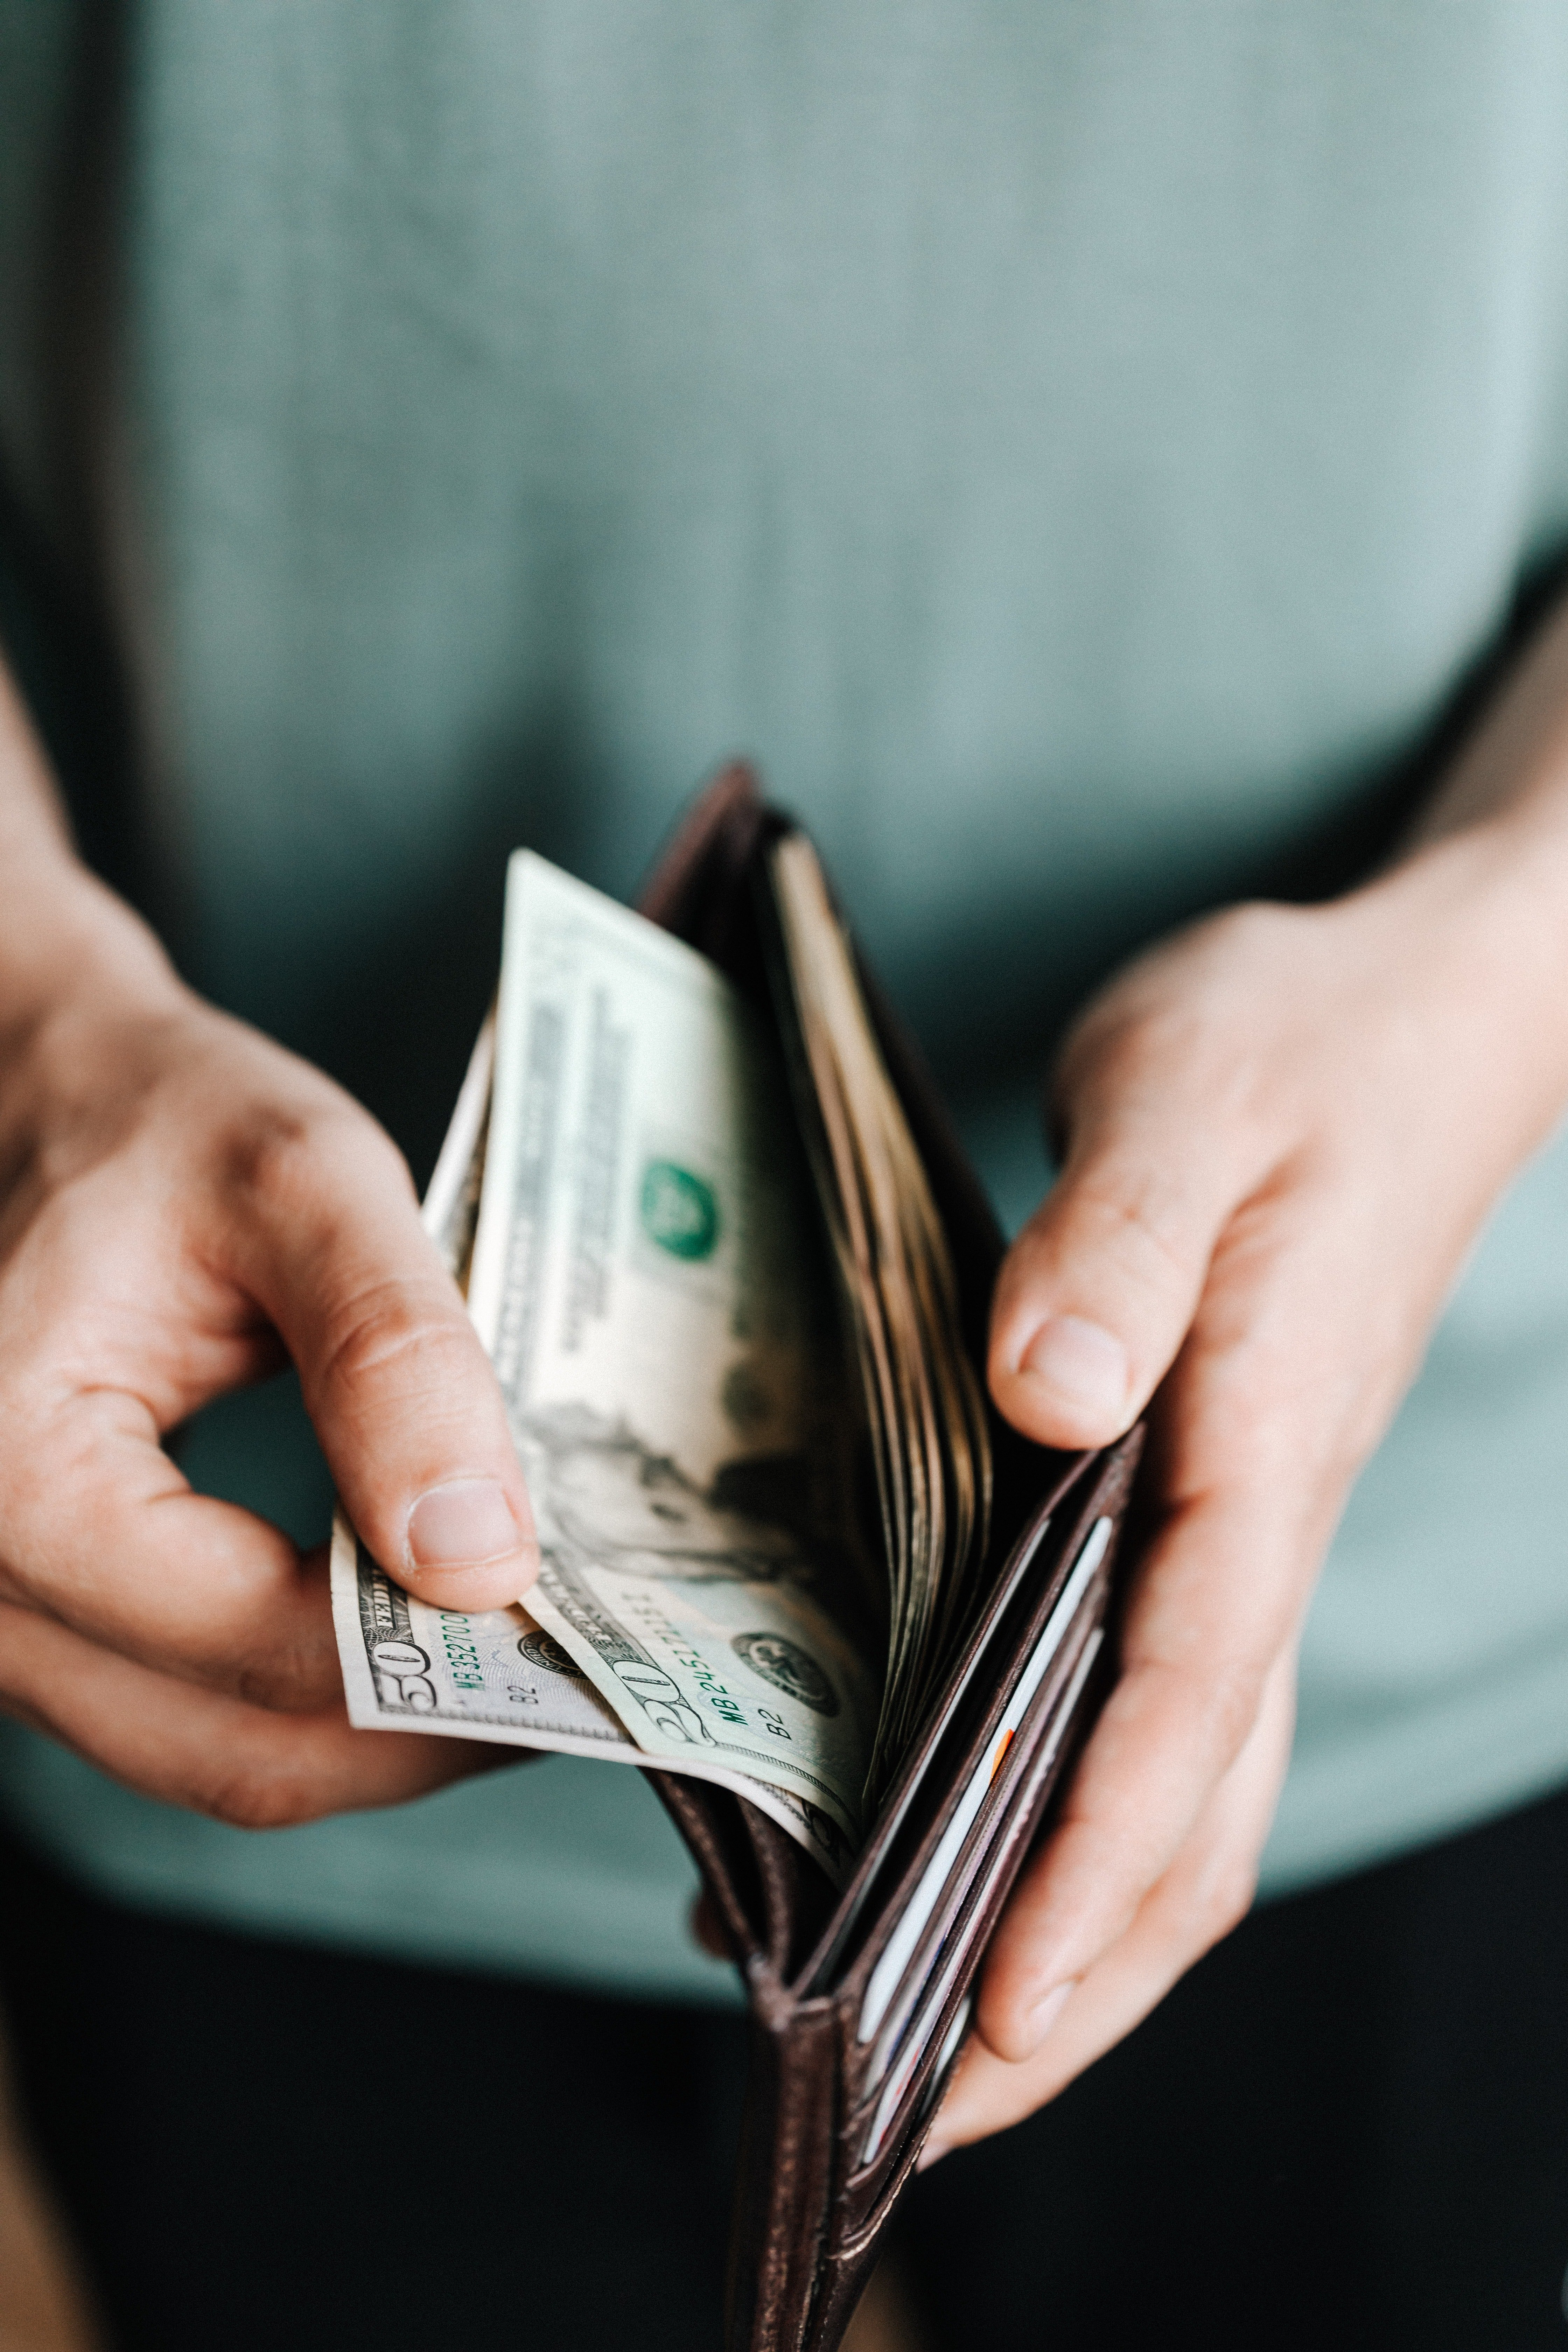 I pulled out money for the homeless lady and her daughter   Source: Pexels